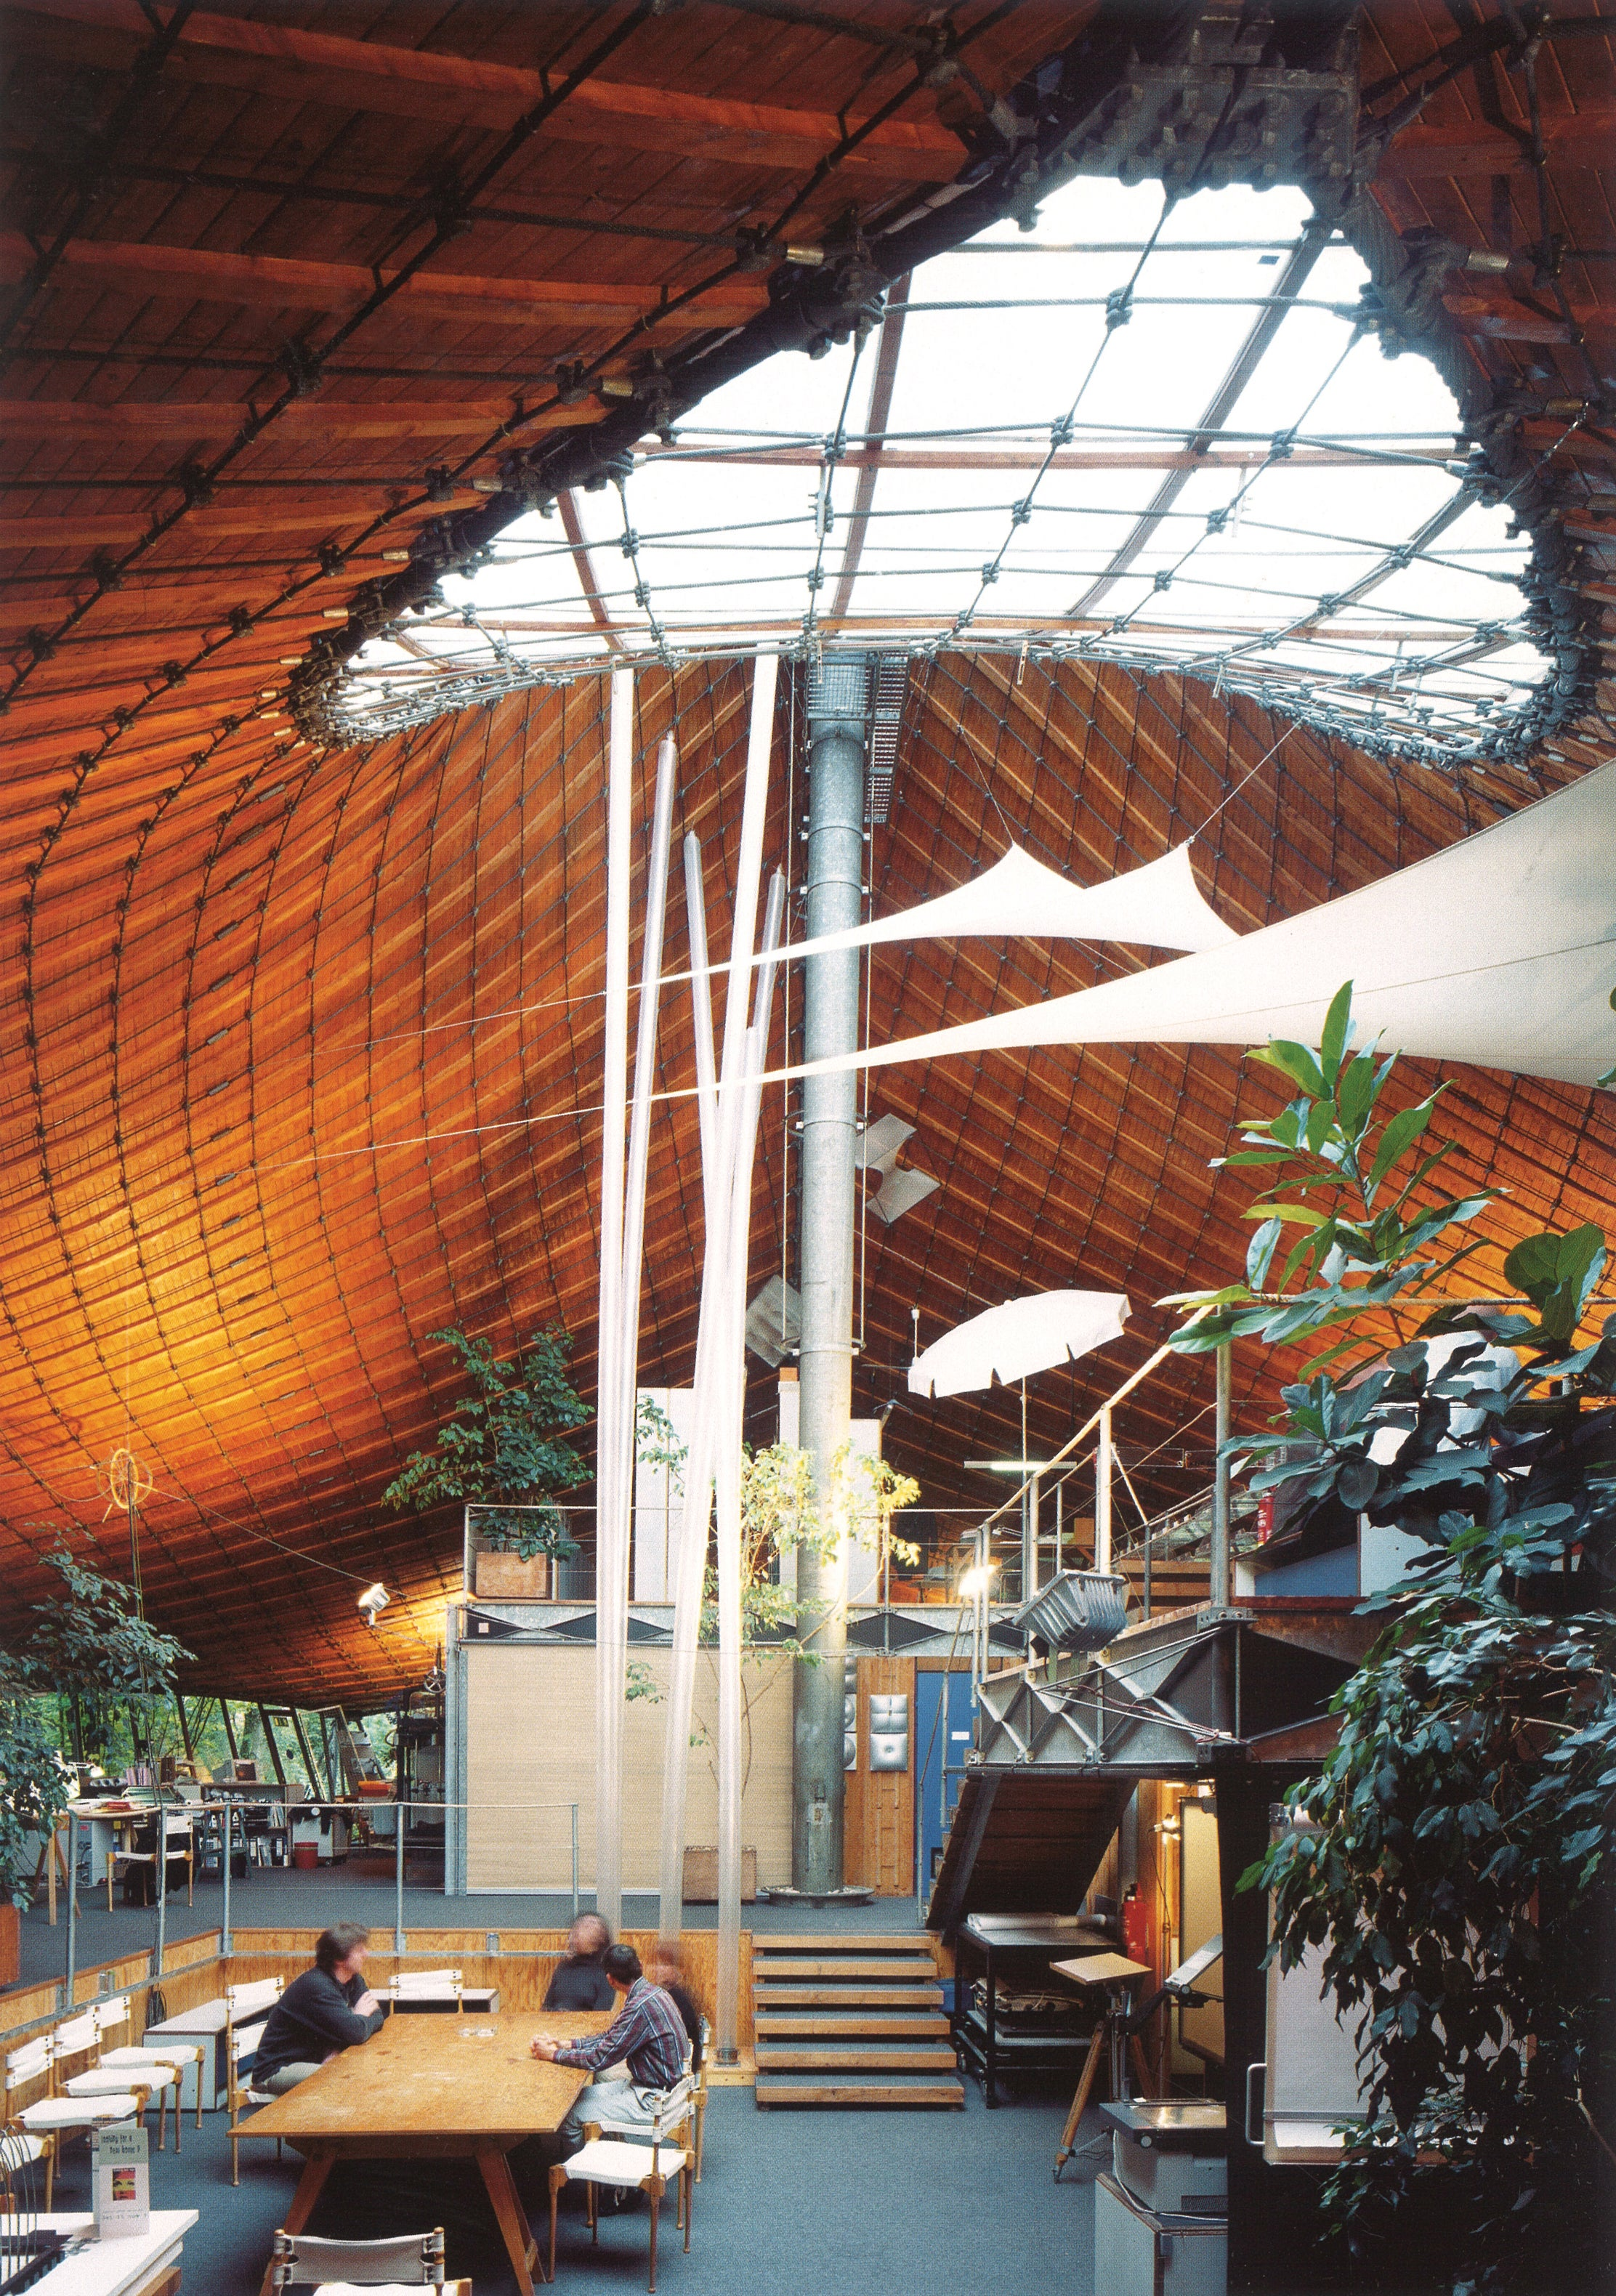 9 Buildings By Frei Otto, the Architect Who Engineered the Future